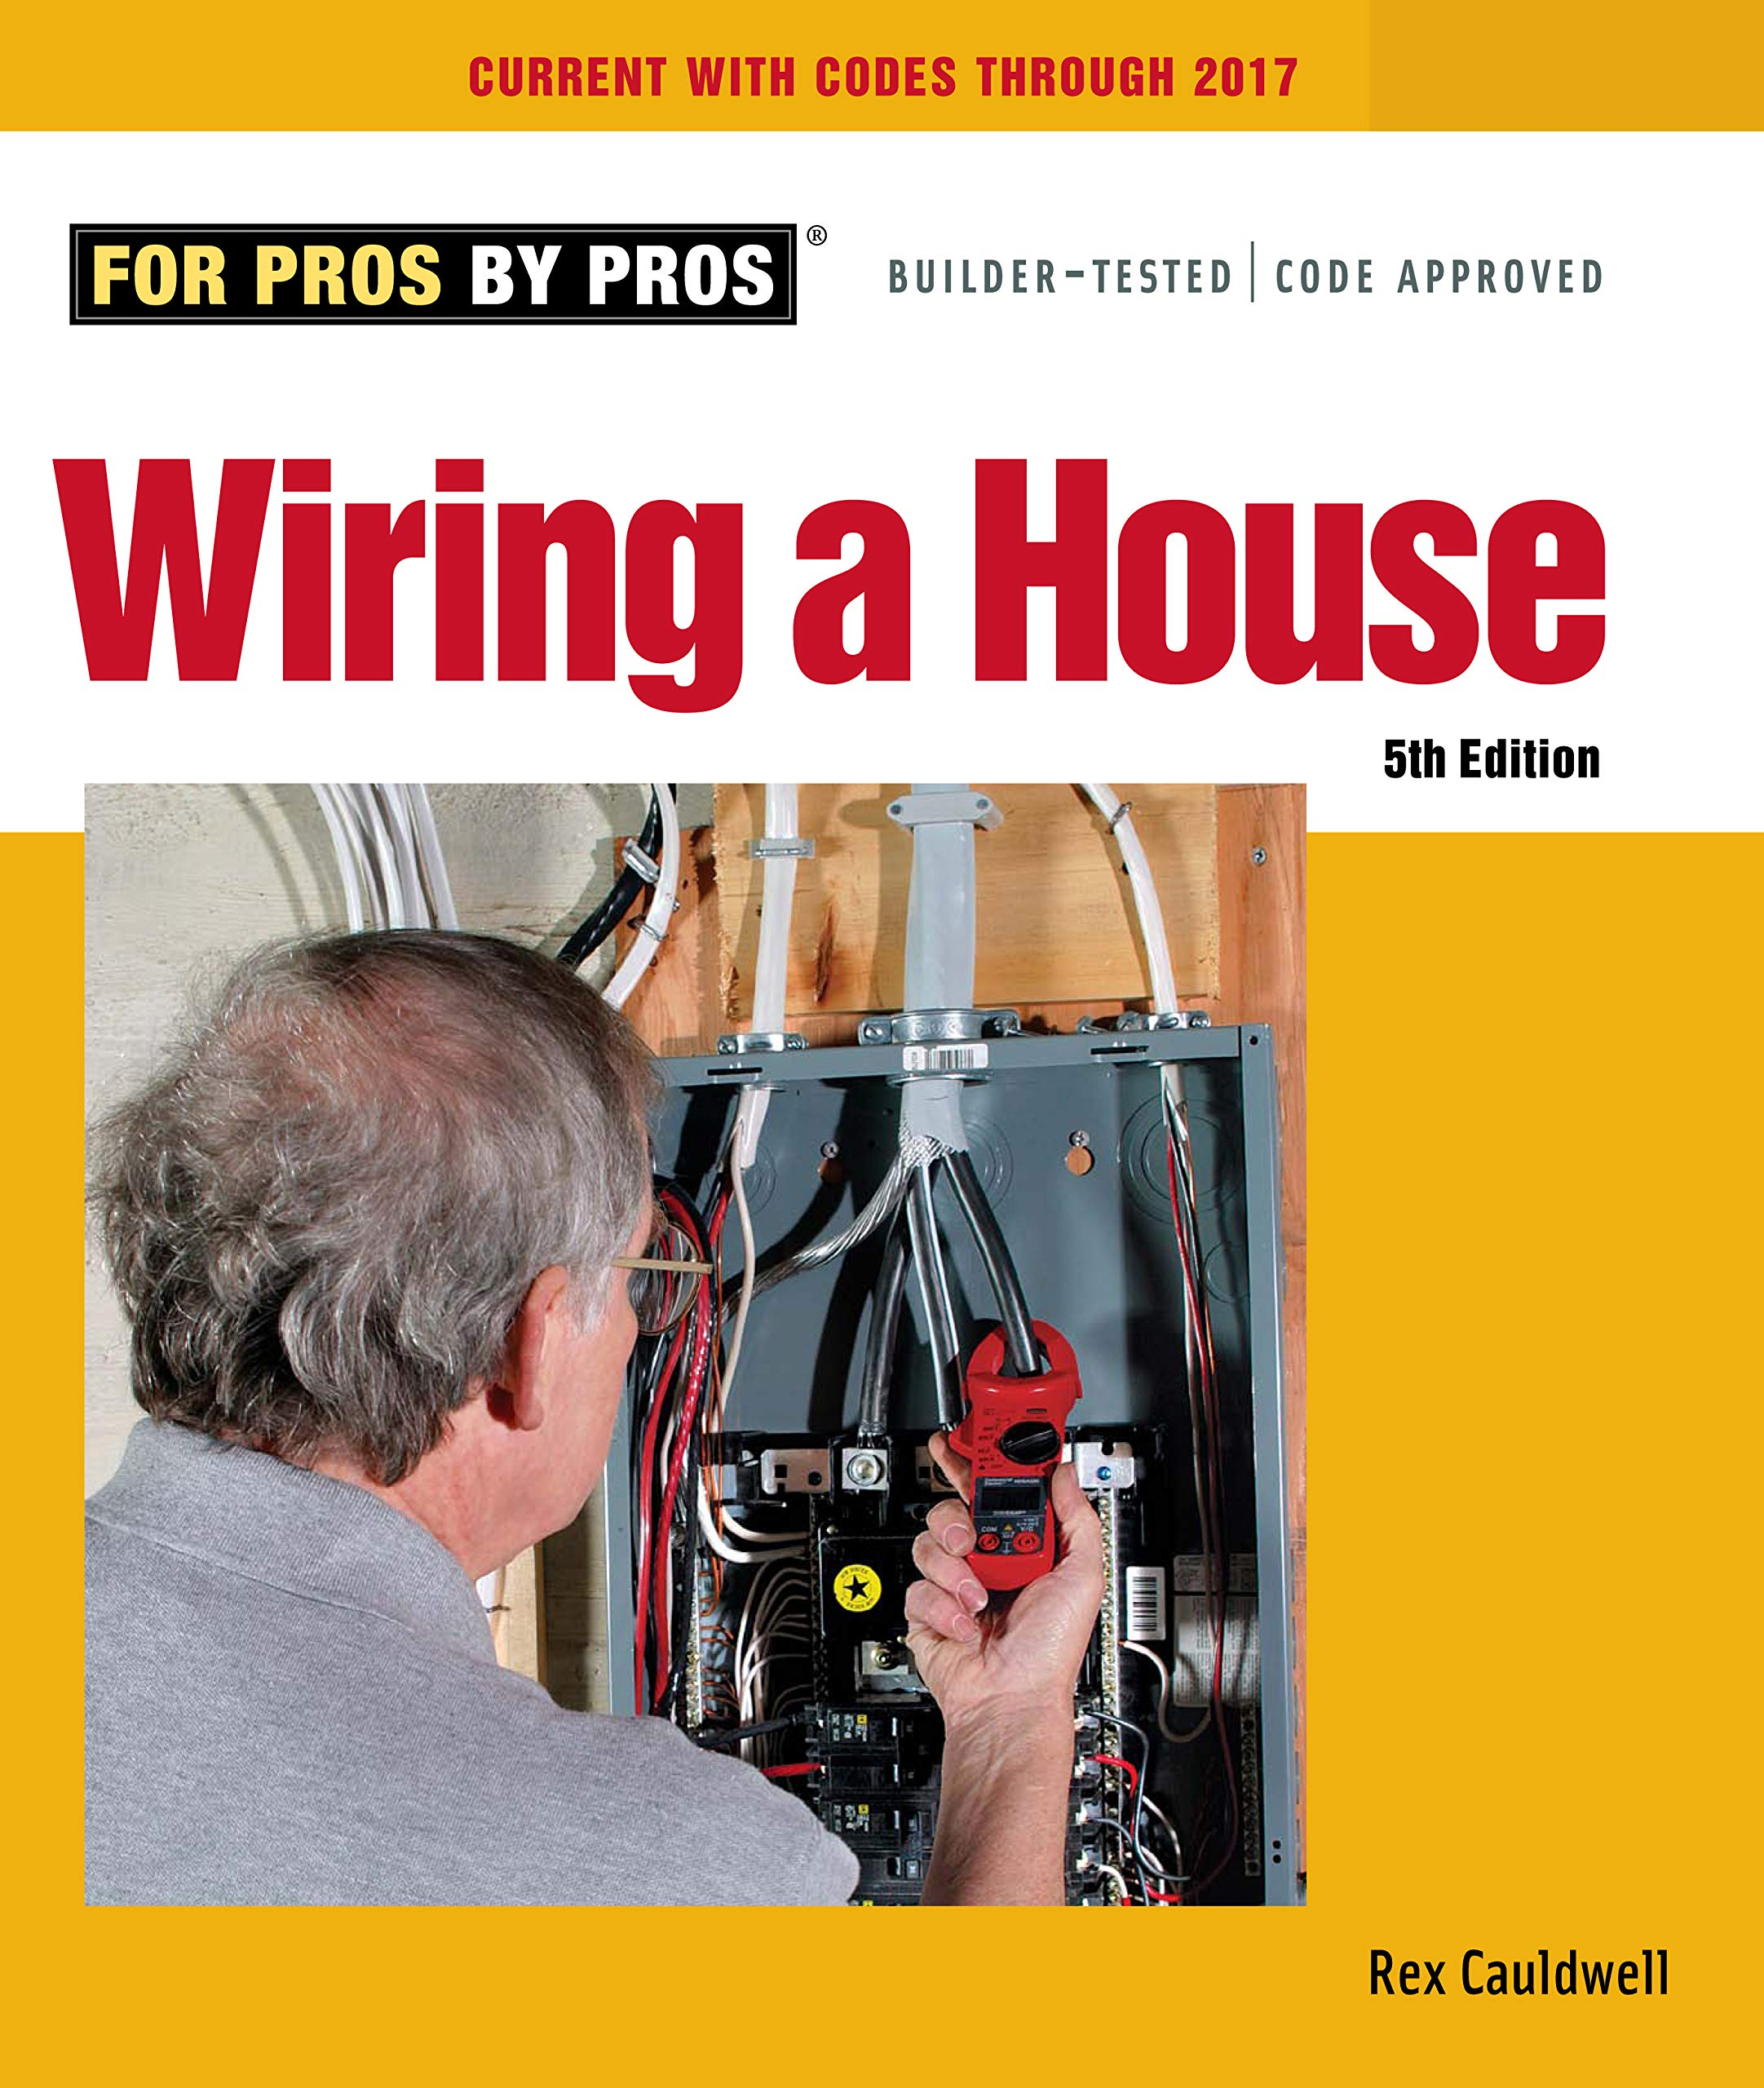 wiring a house pbl machine repair manual wiring a house book wiring a house pbl #9